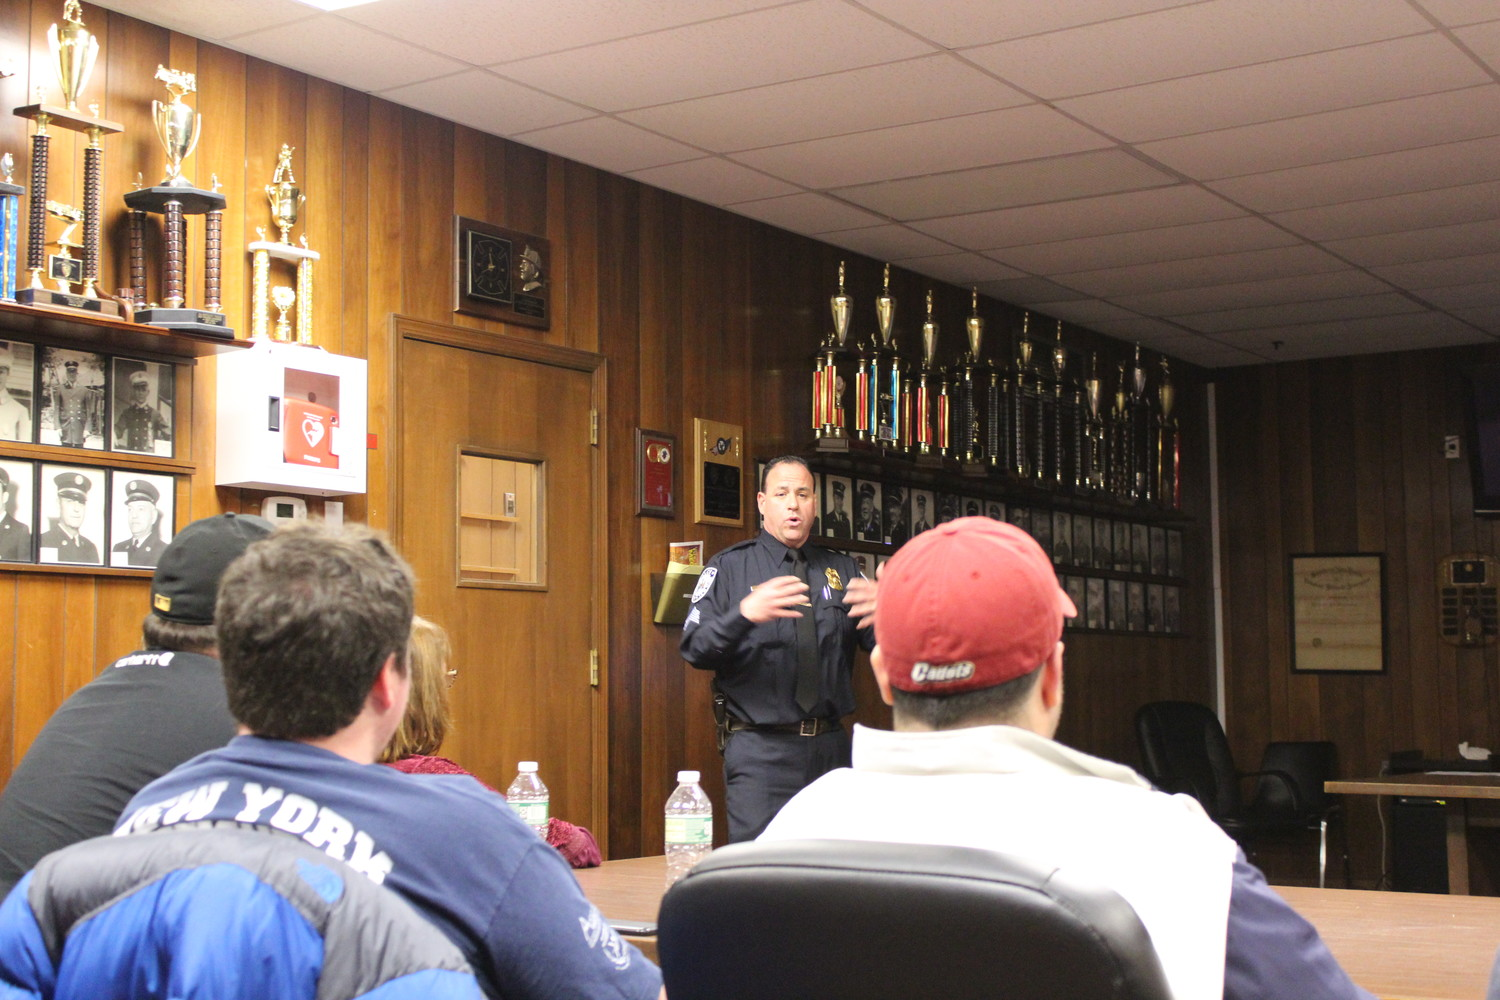 Sergeant Brian Paladino spoke to about 20 residents about how a Neighborhood Watch can prevent crime on Nov. 29.